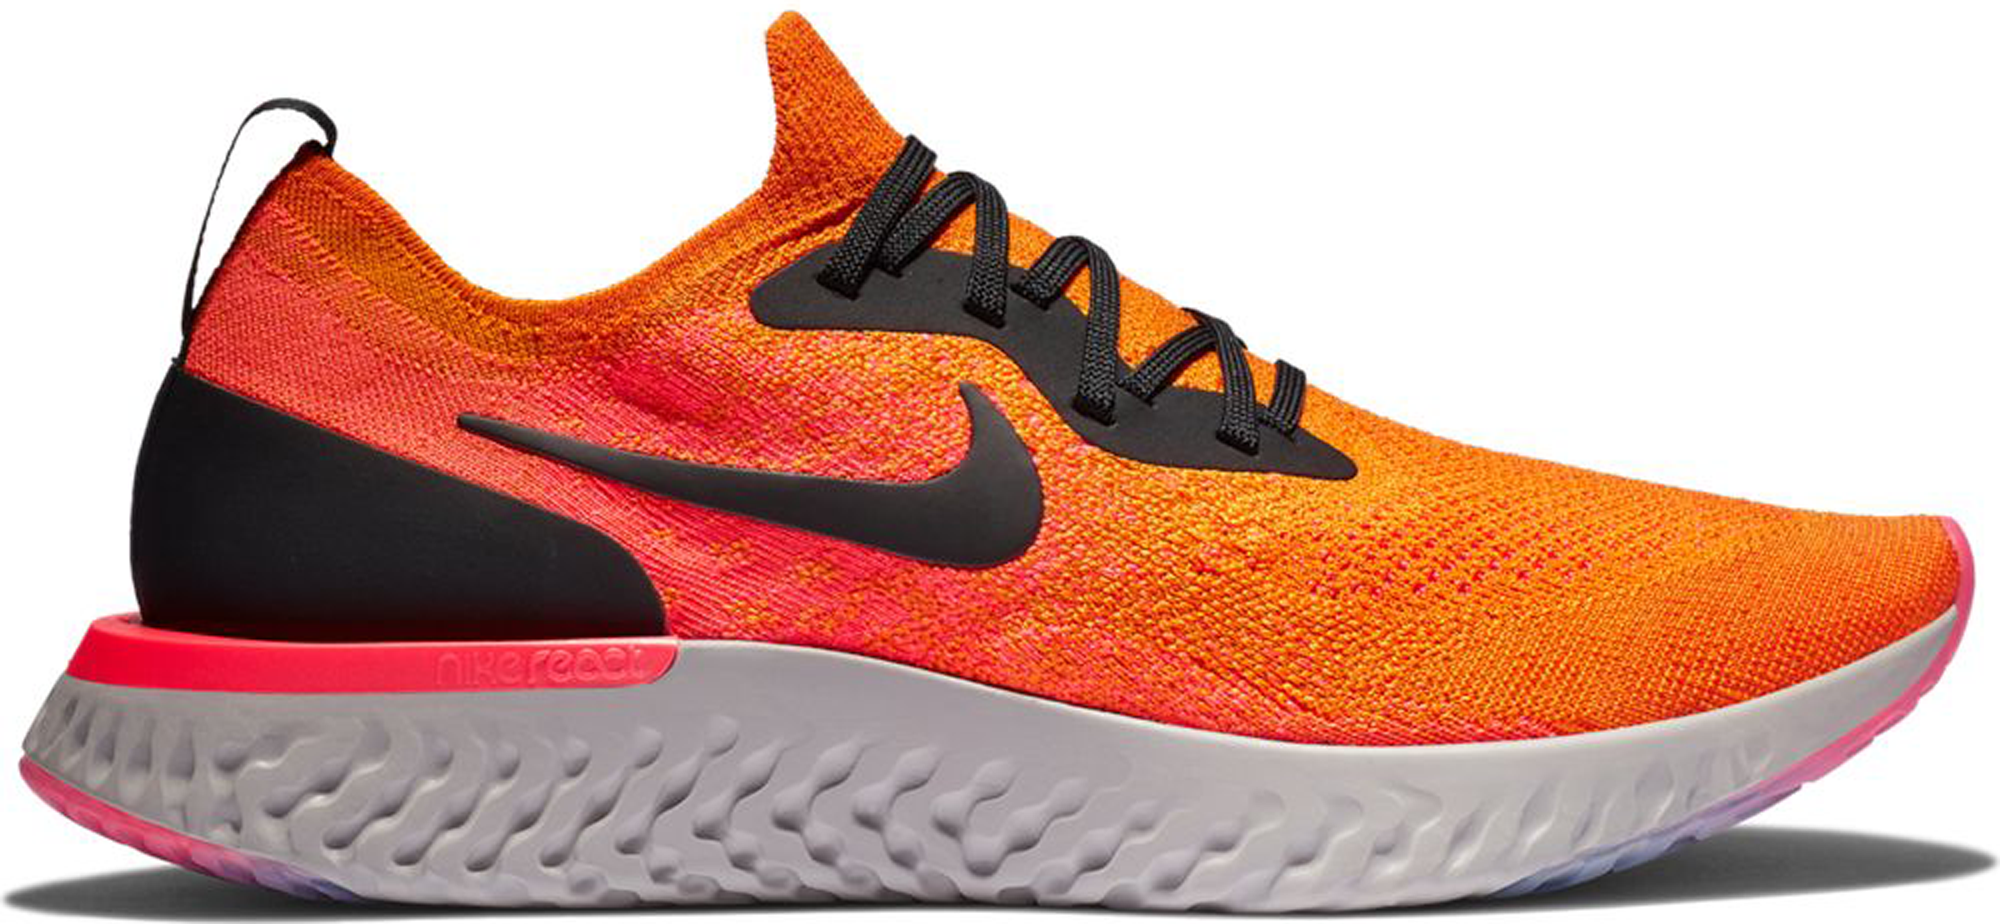 Nike Epic React Flyknit Copper Flash